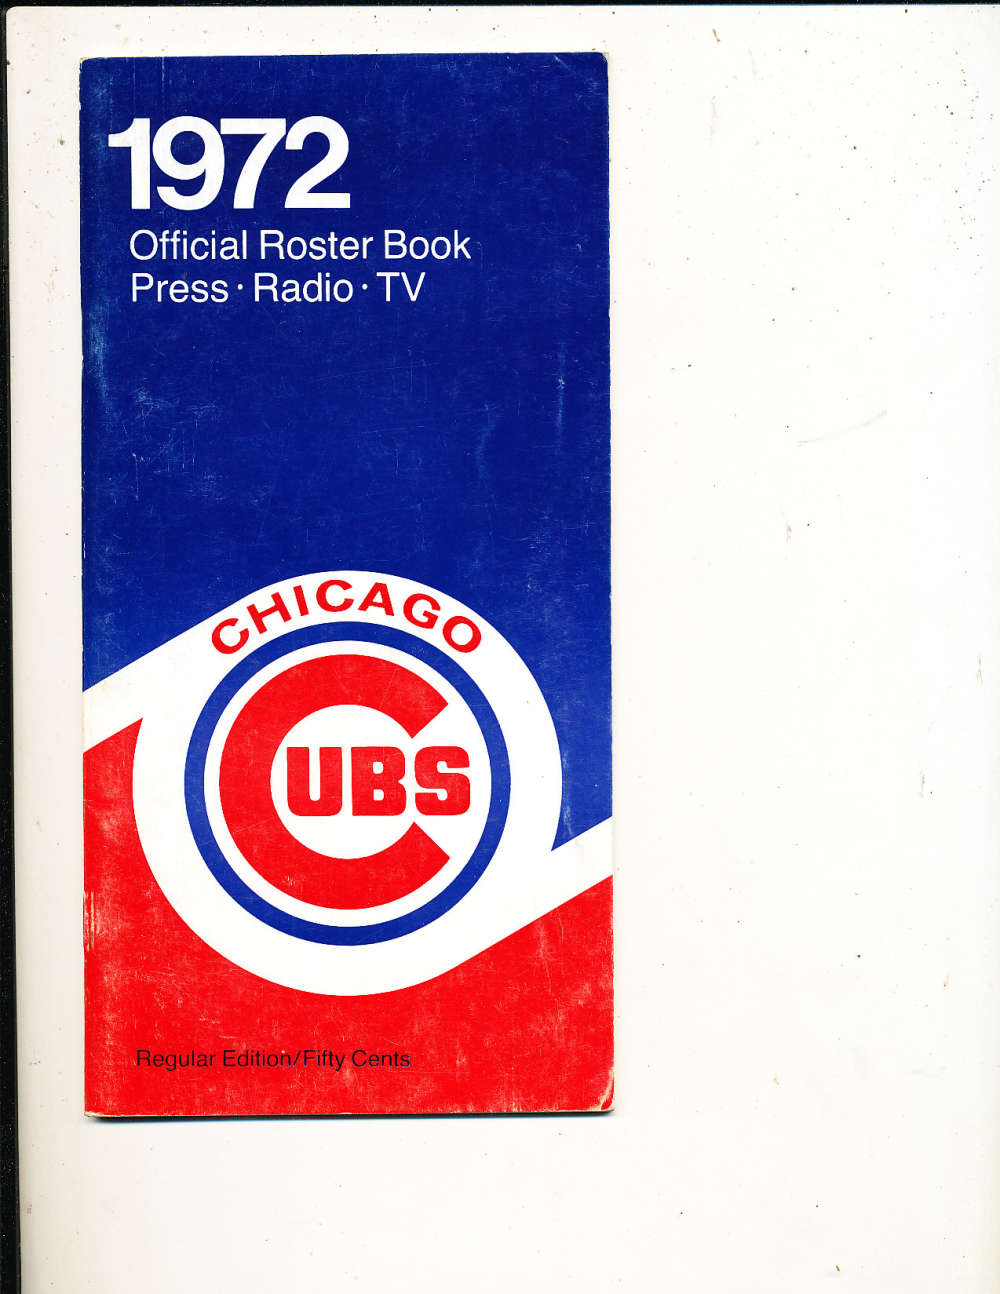 1972 Chicago Cubs MLB Media Press Guide MLBmg20